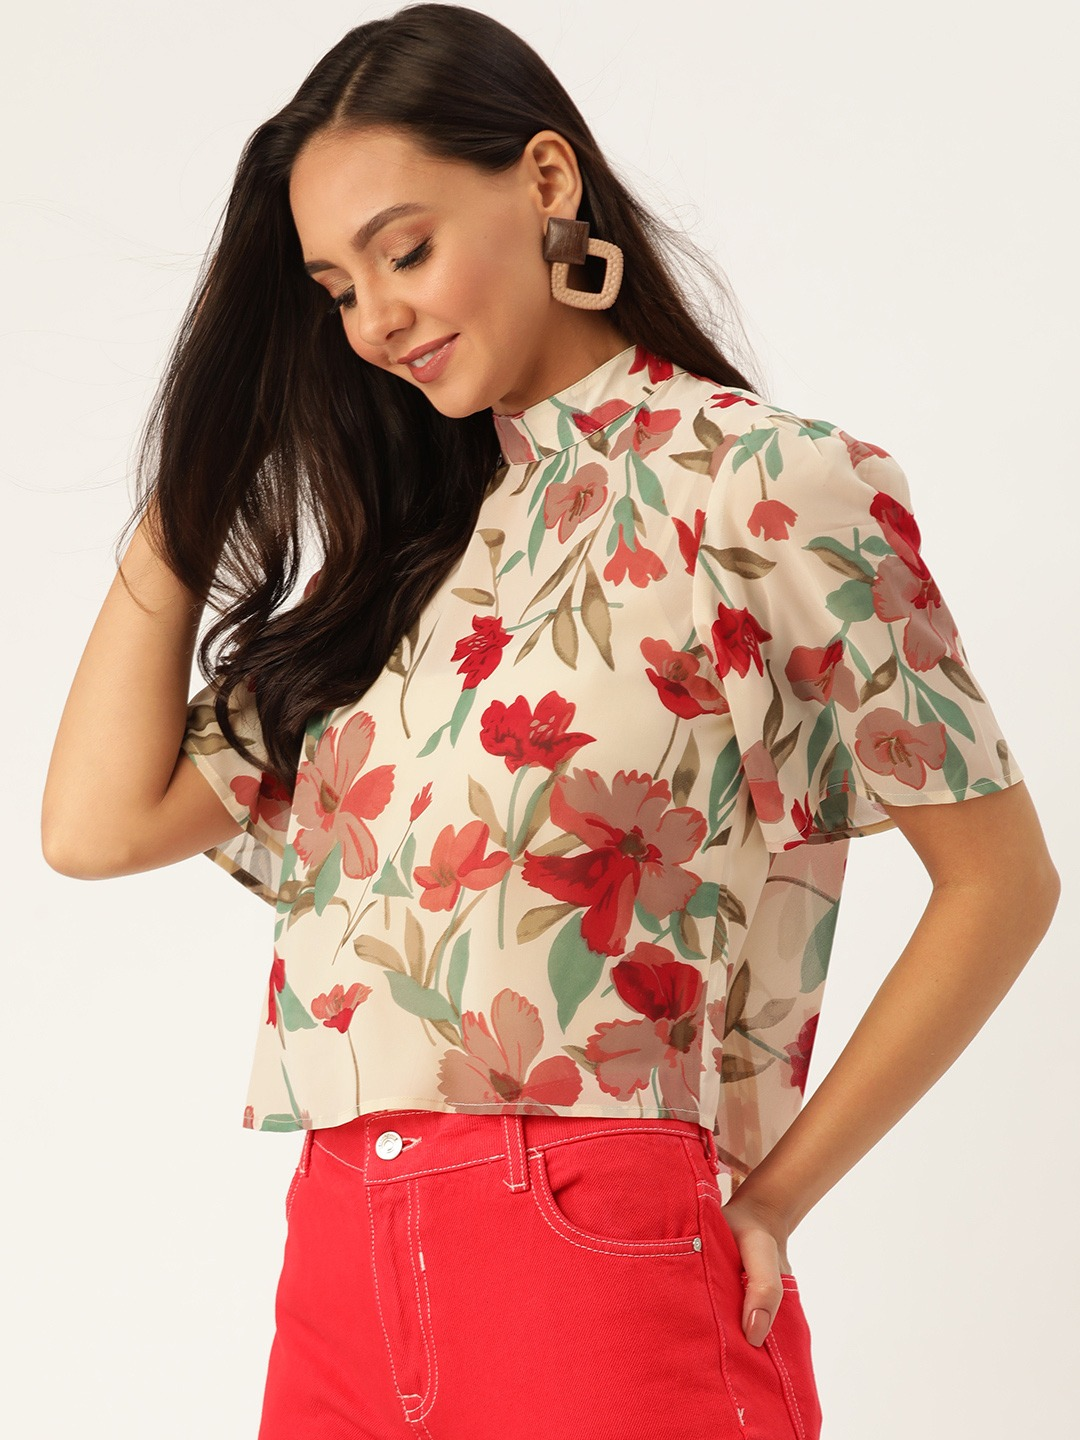 Tops-Stunning In Sheer Floral Top4